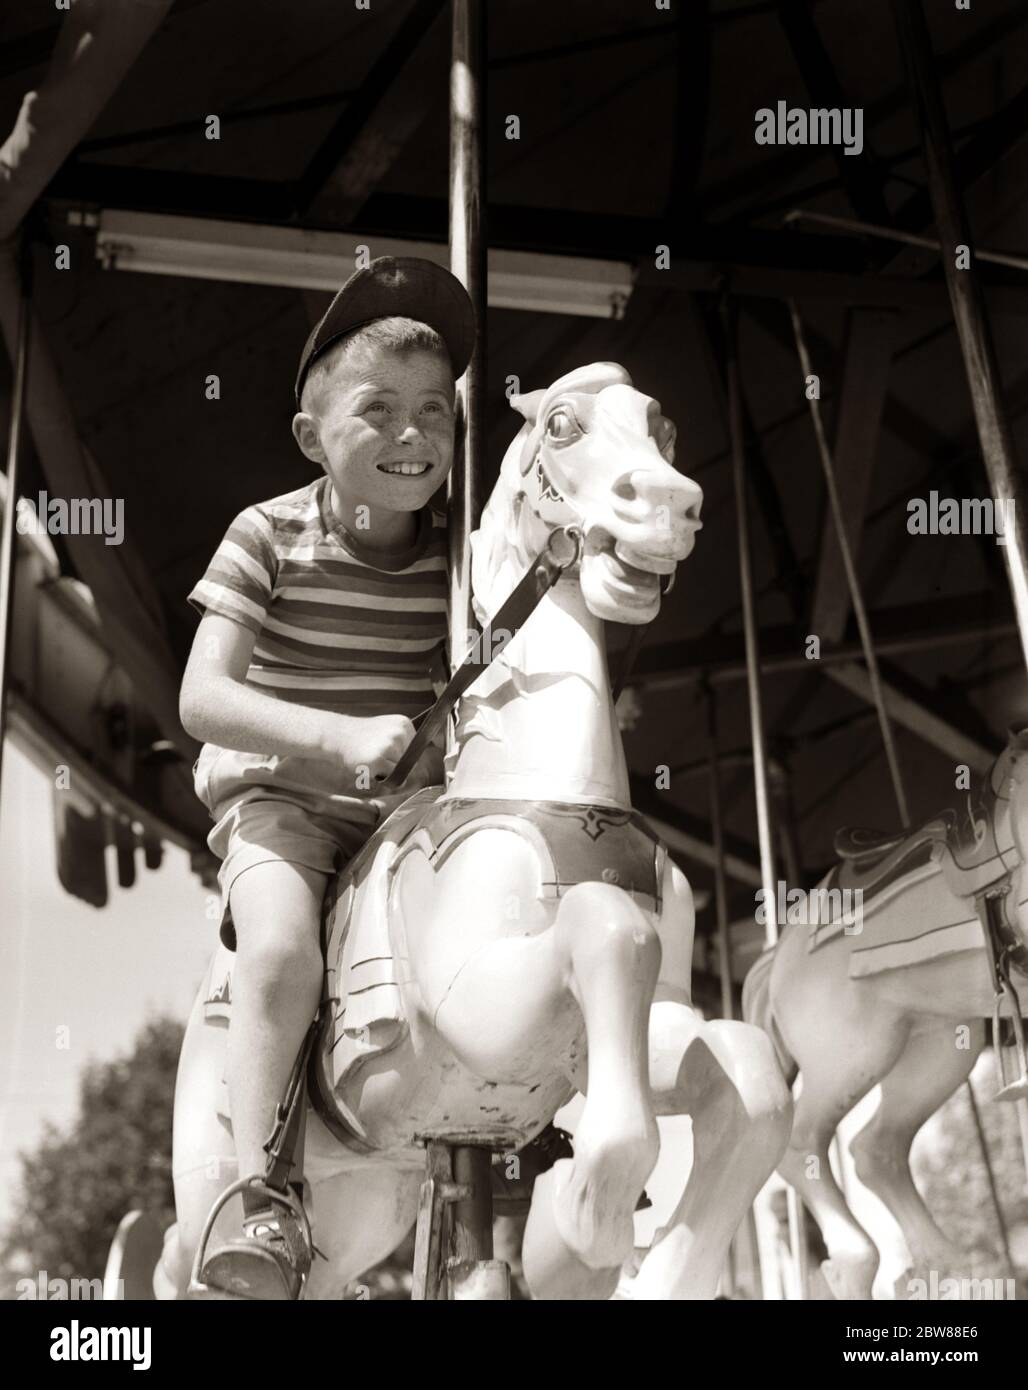 Vintage Carousel Merry Go Round Black Horse High Resolution Stock Photography And Images Alamy